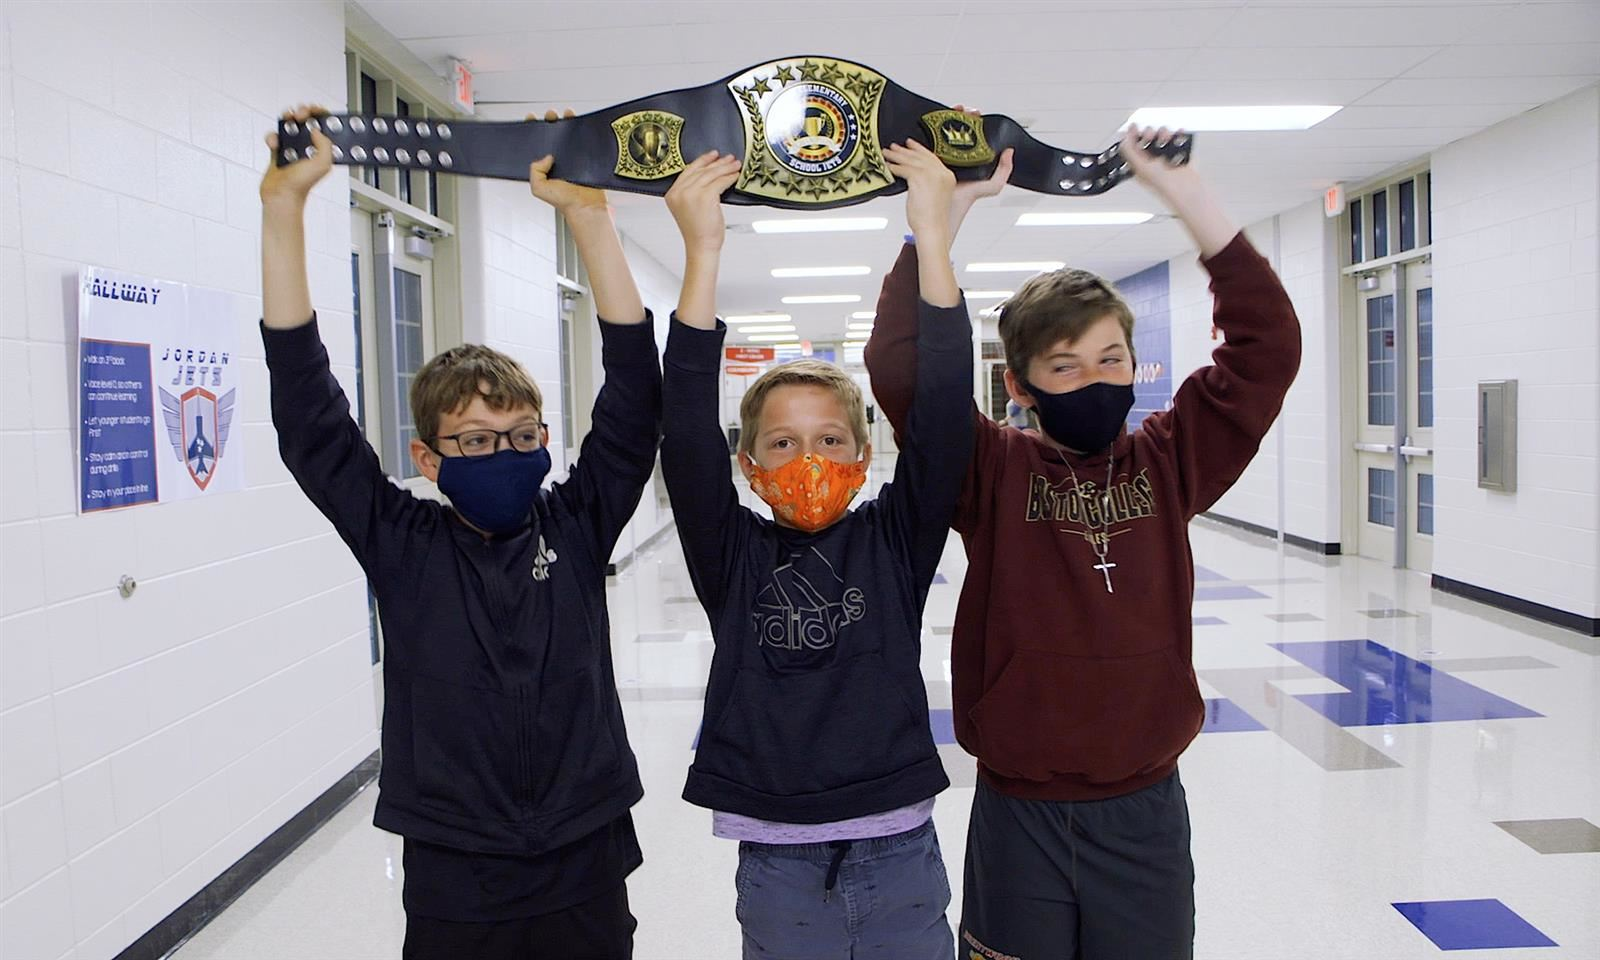 Students hold up belt